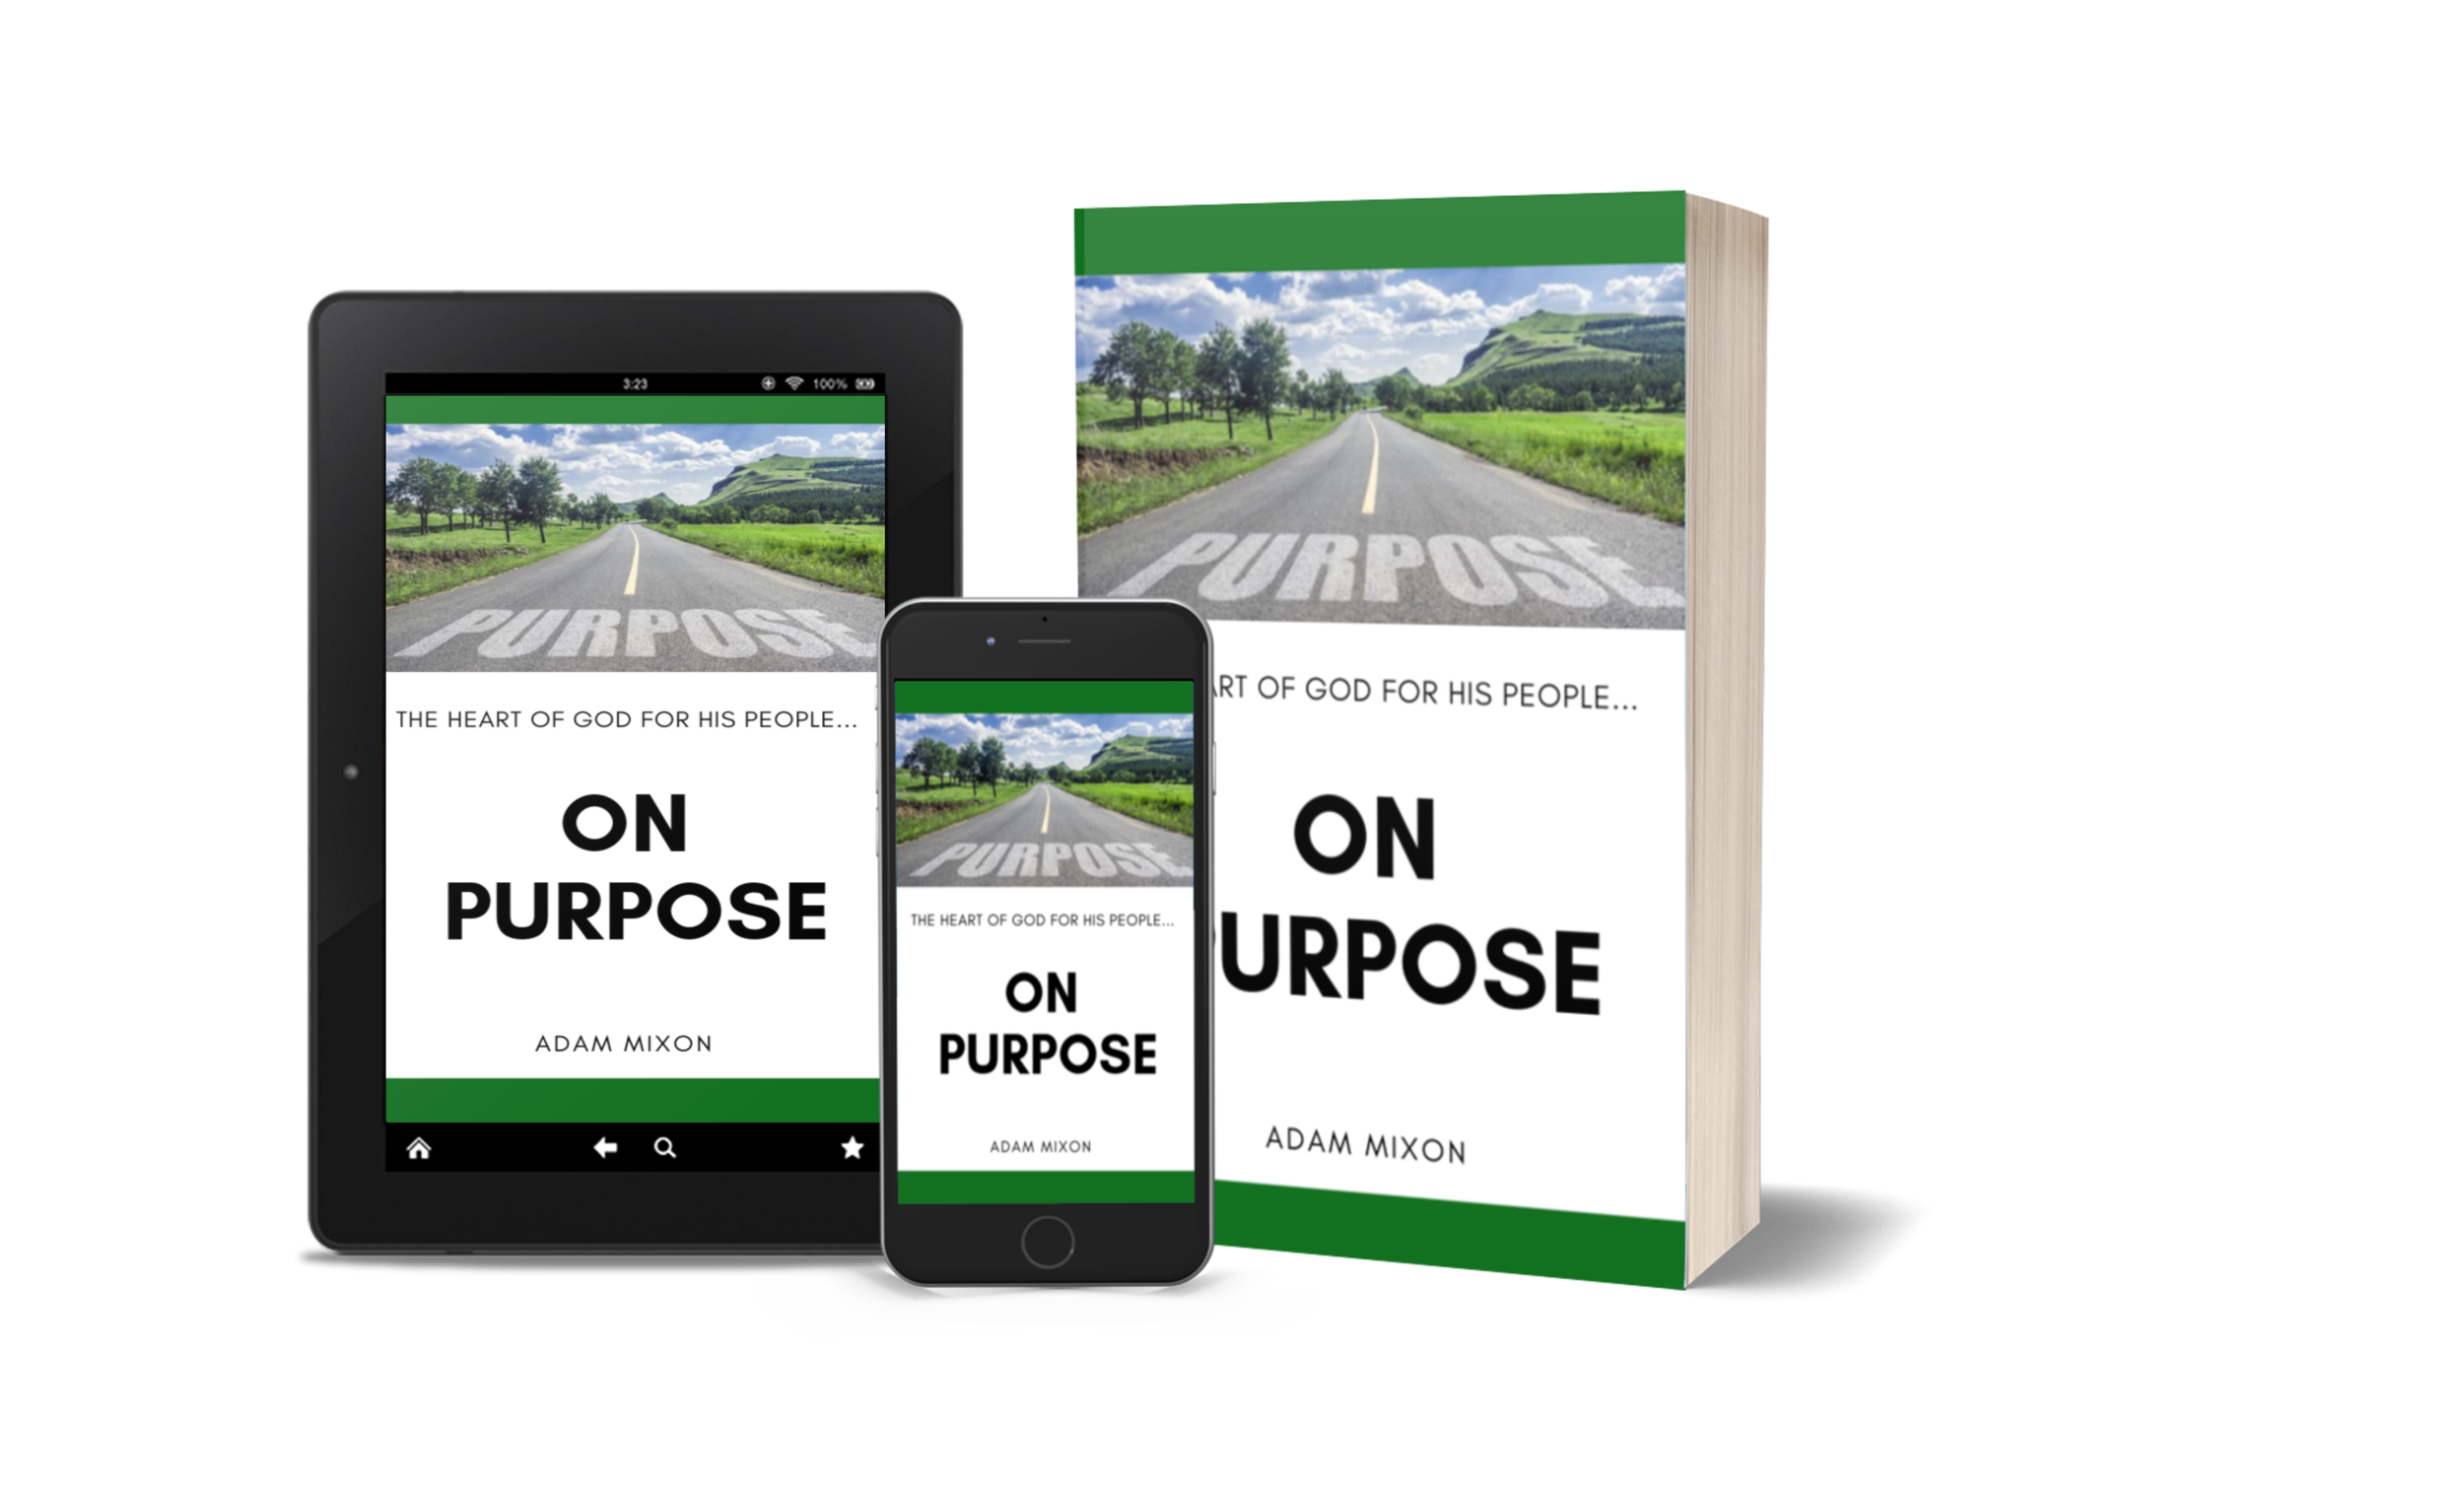 On Purpose - The Heart of God for His People